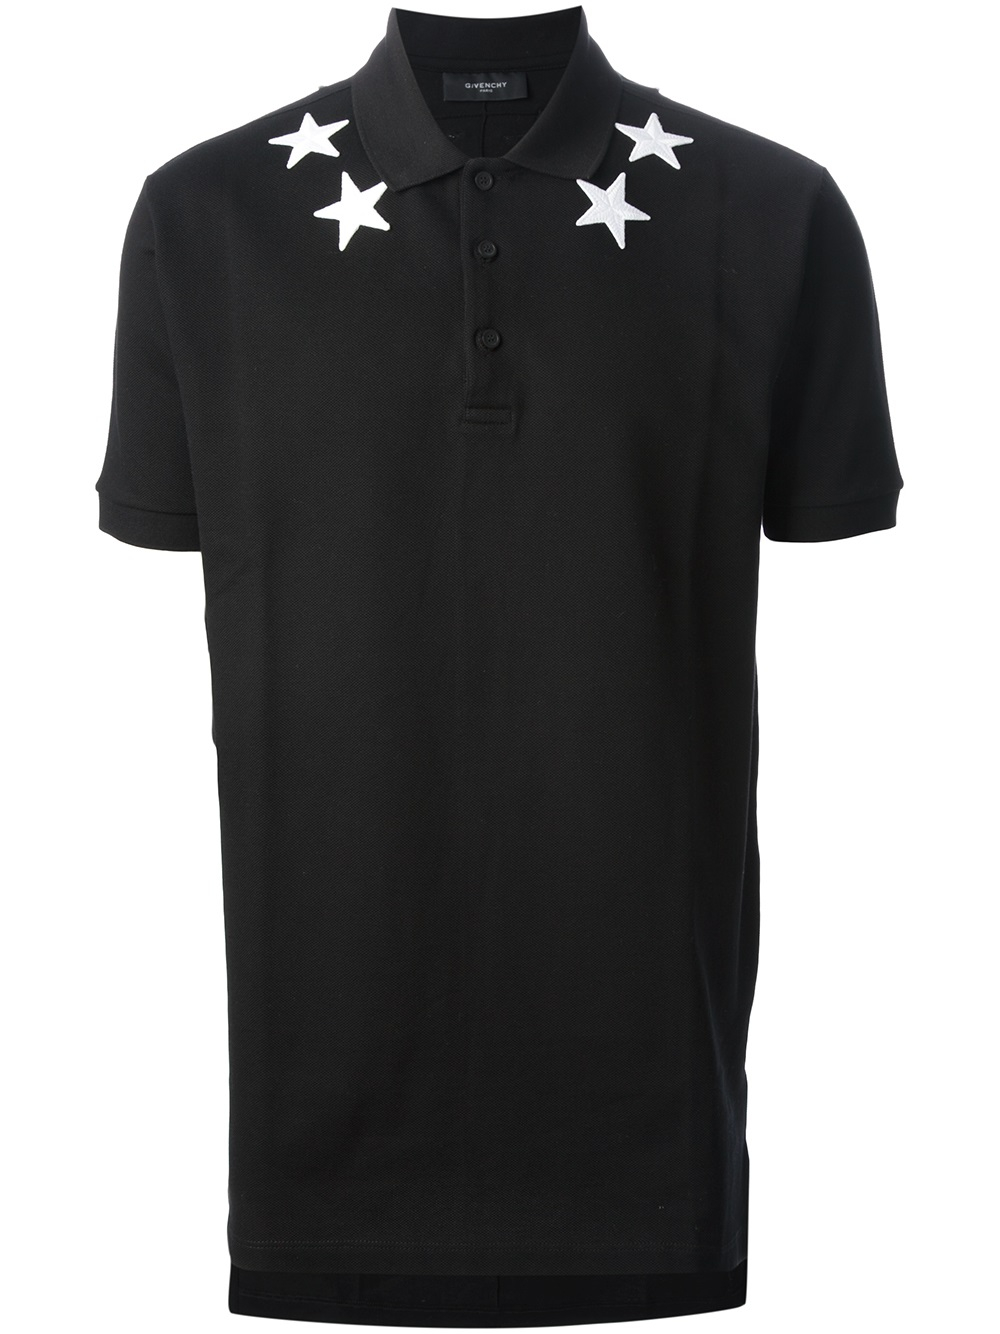 givenchy classic polo shirt in black for men lyst. Black Bedroom Furniture Sets. Home Design Ideas